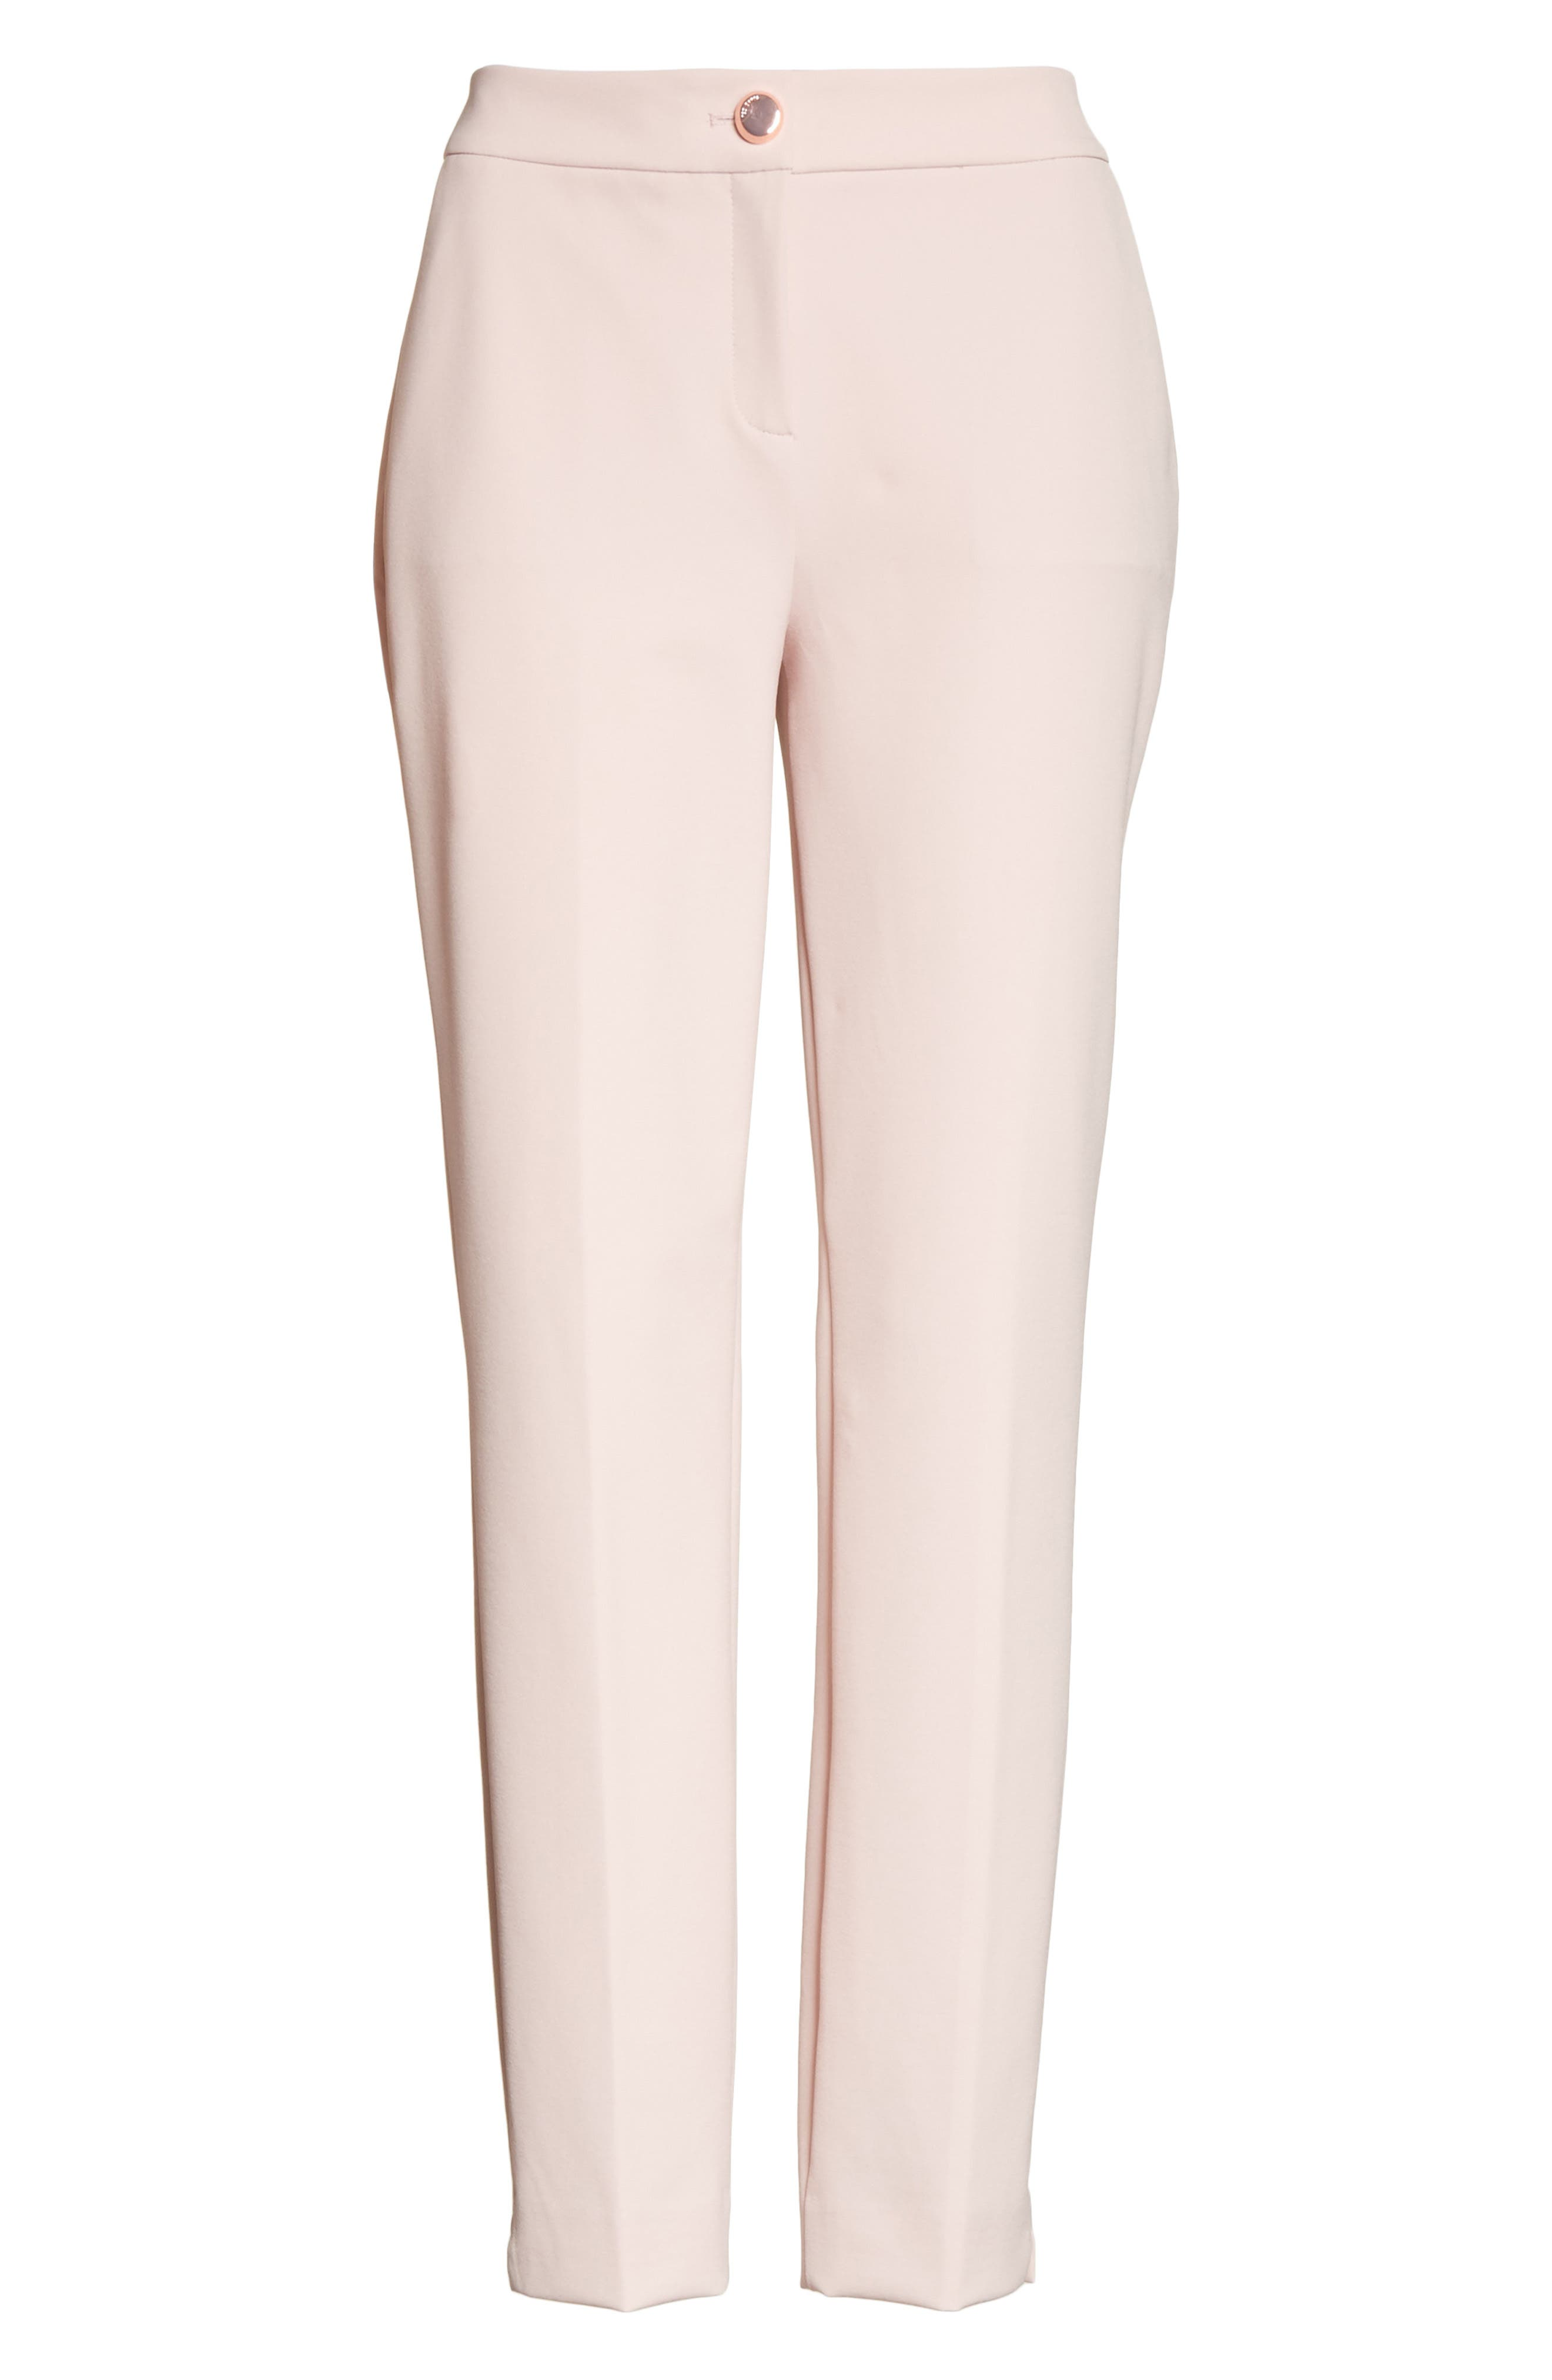 Suria Tailored Ankle Grazer Trousers,                             Alternate thumbnail 6, color,                             680